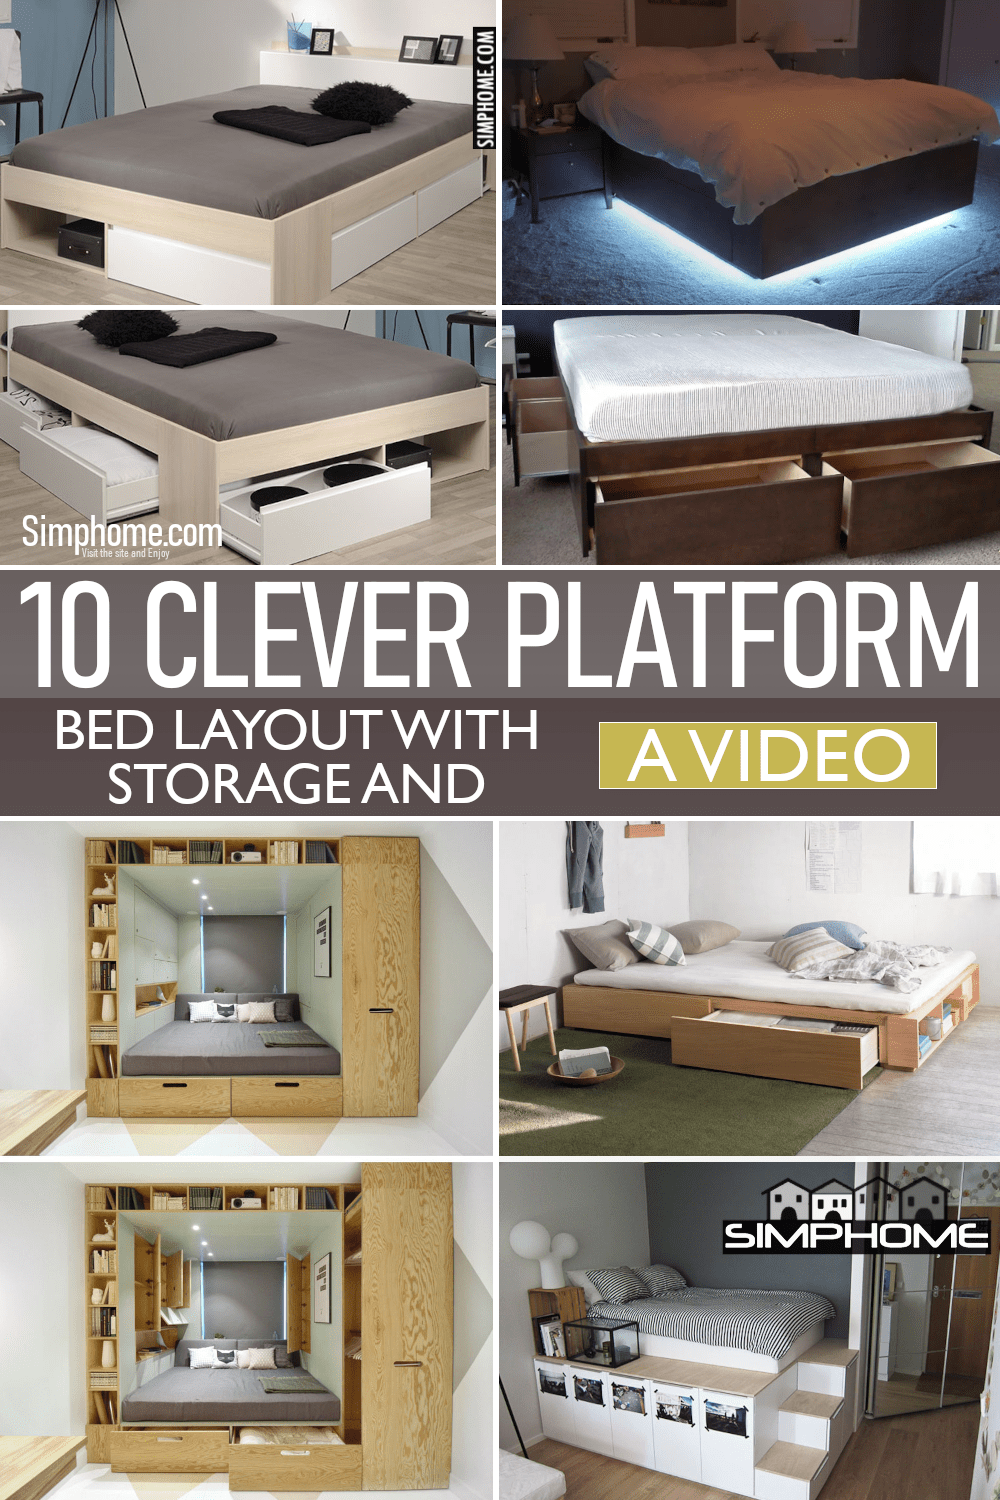 10 Clever Platform Bed Ideas with Storage via Simphome.comFeatured